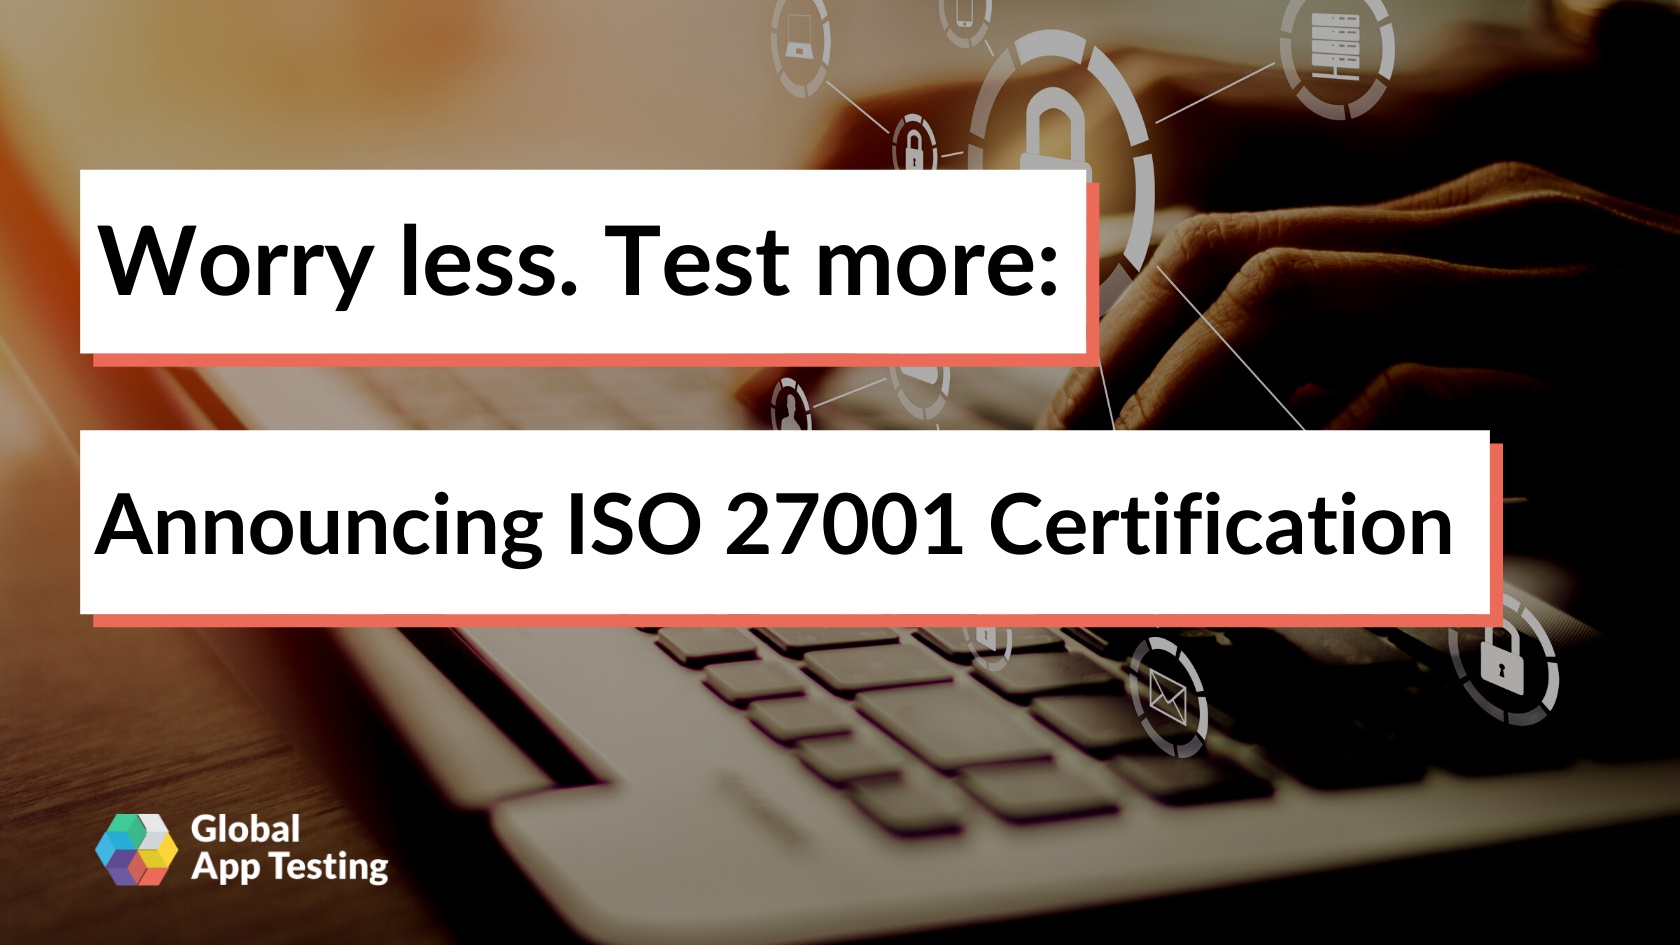 Worry less. Test more: Announcing ISO 27001 Certification